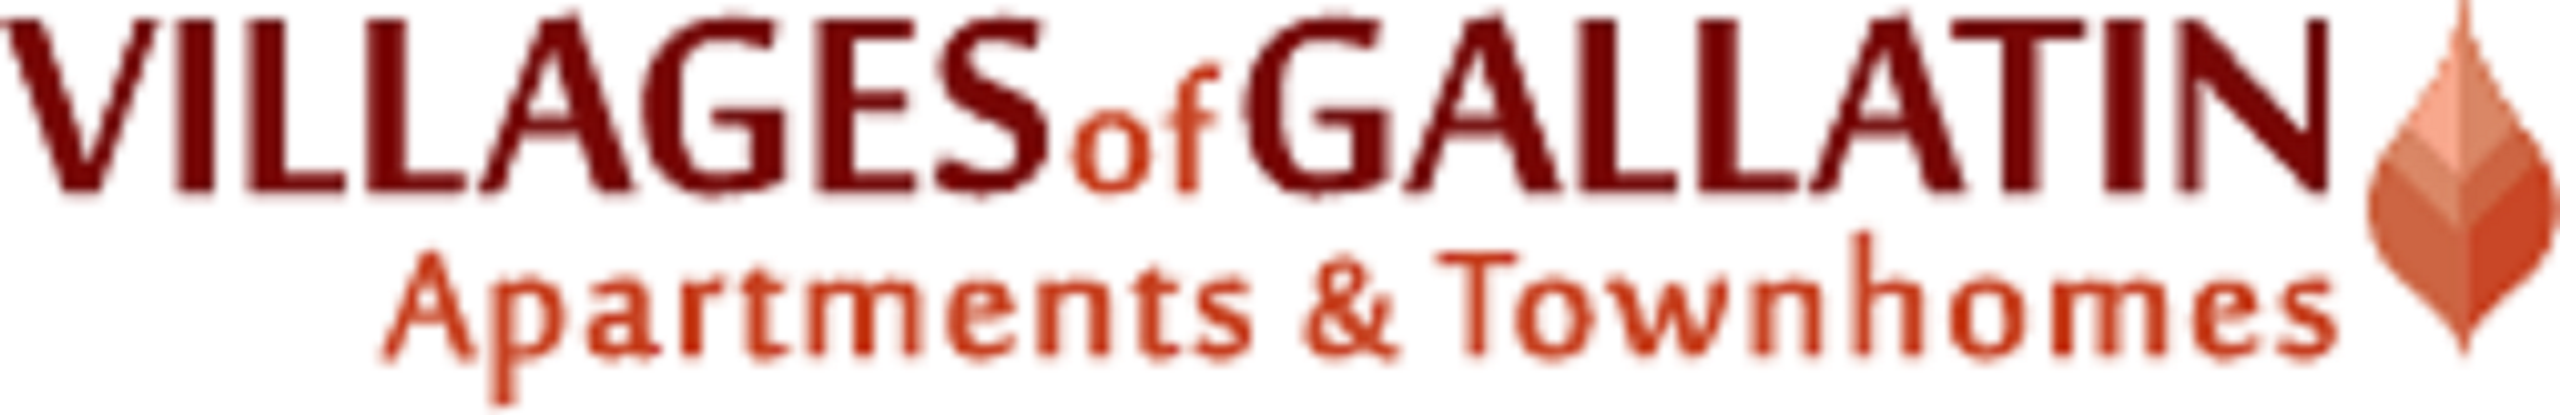 Gallatin Property Logo 53